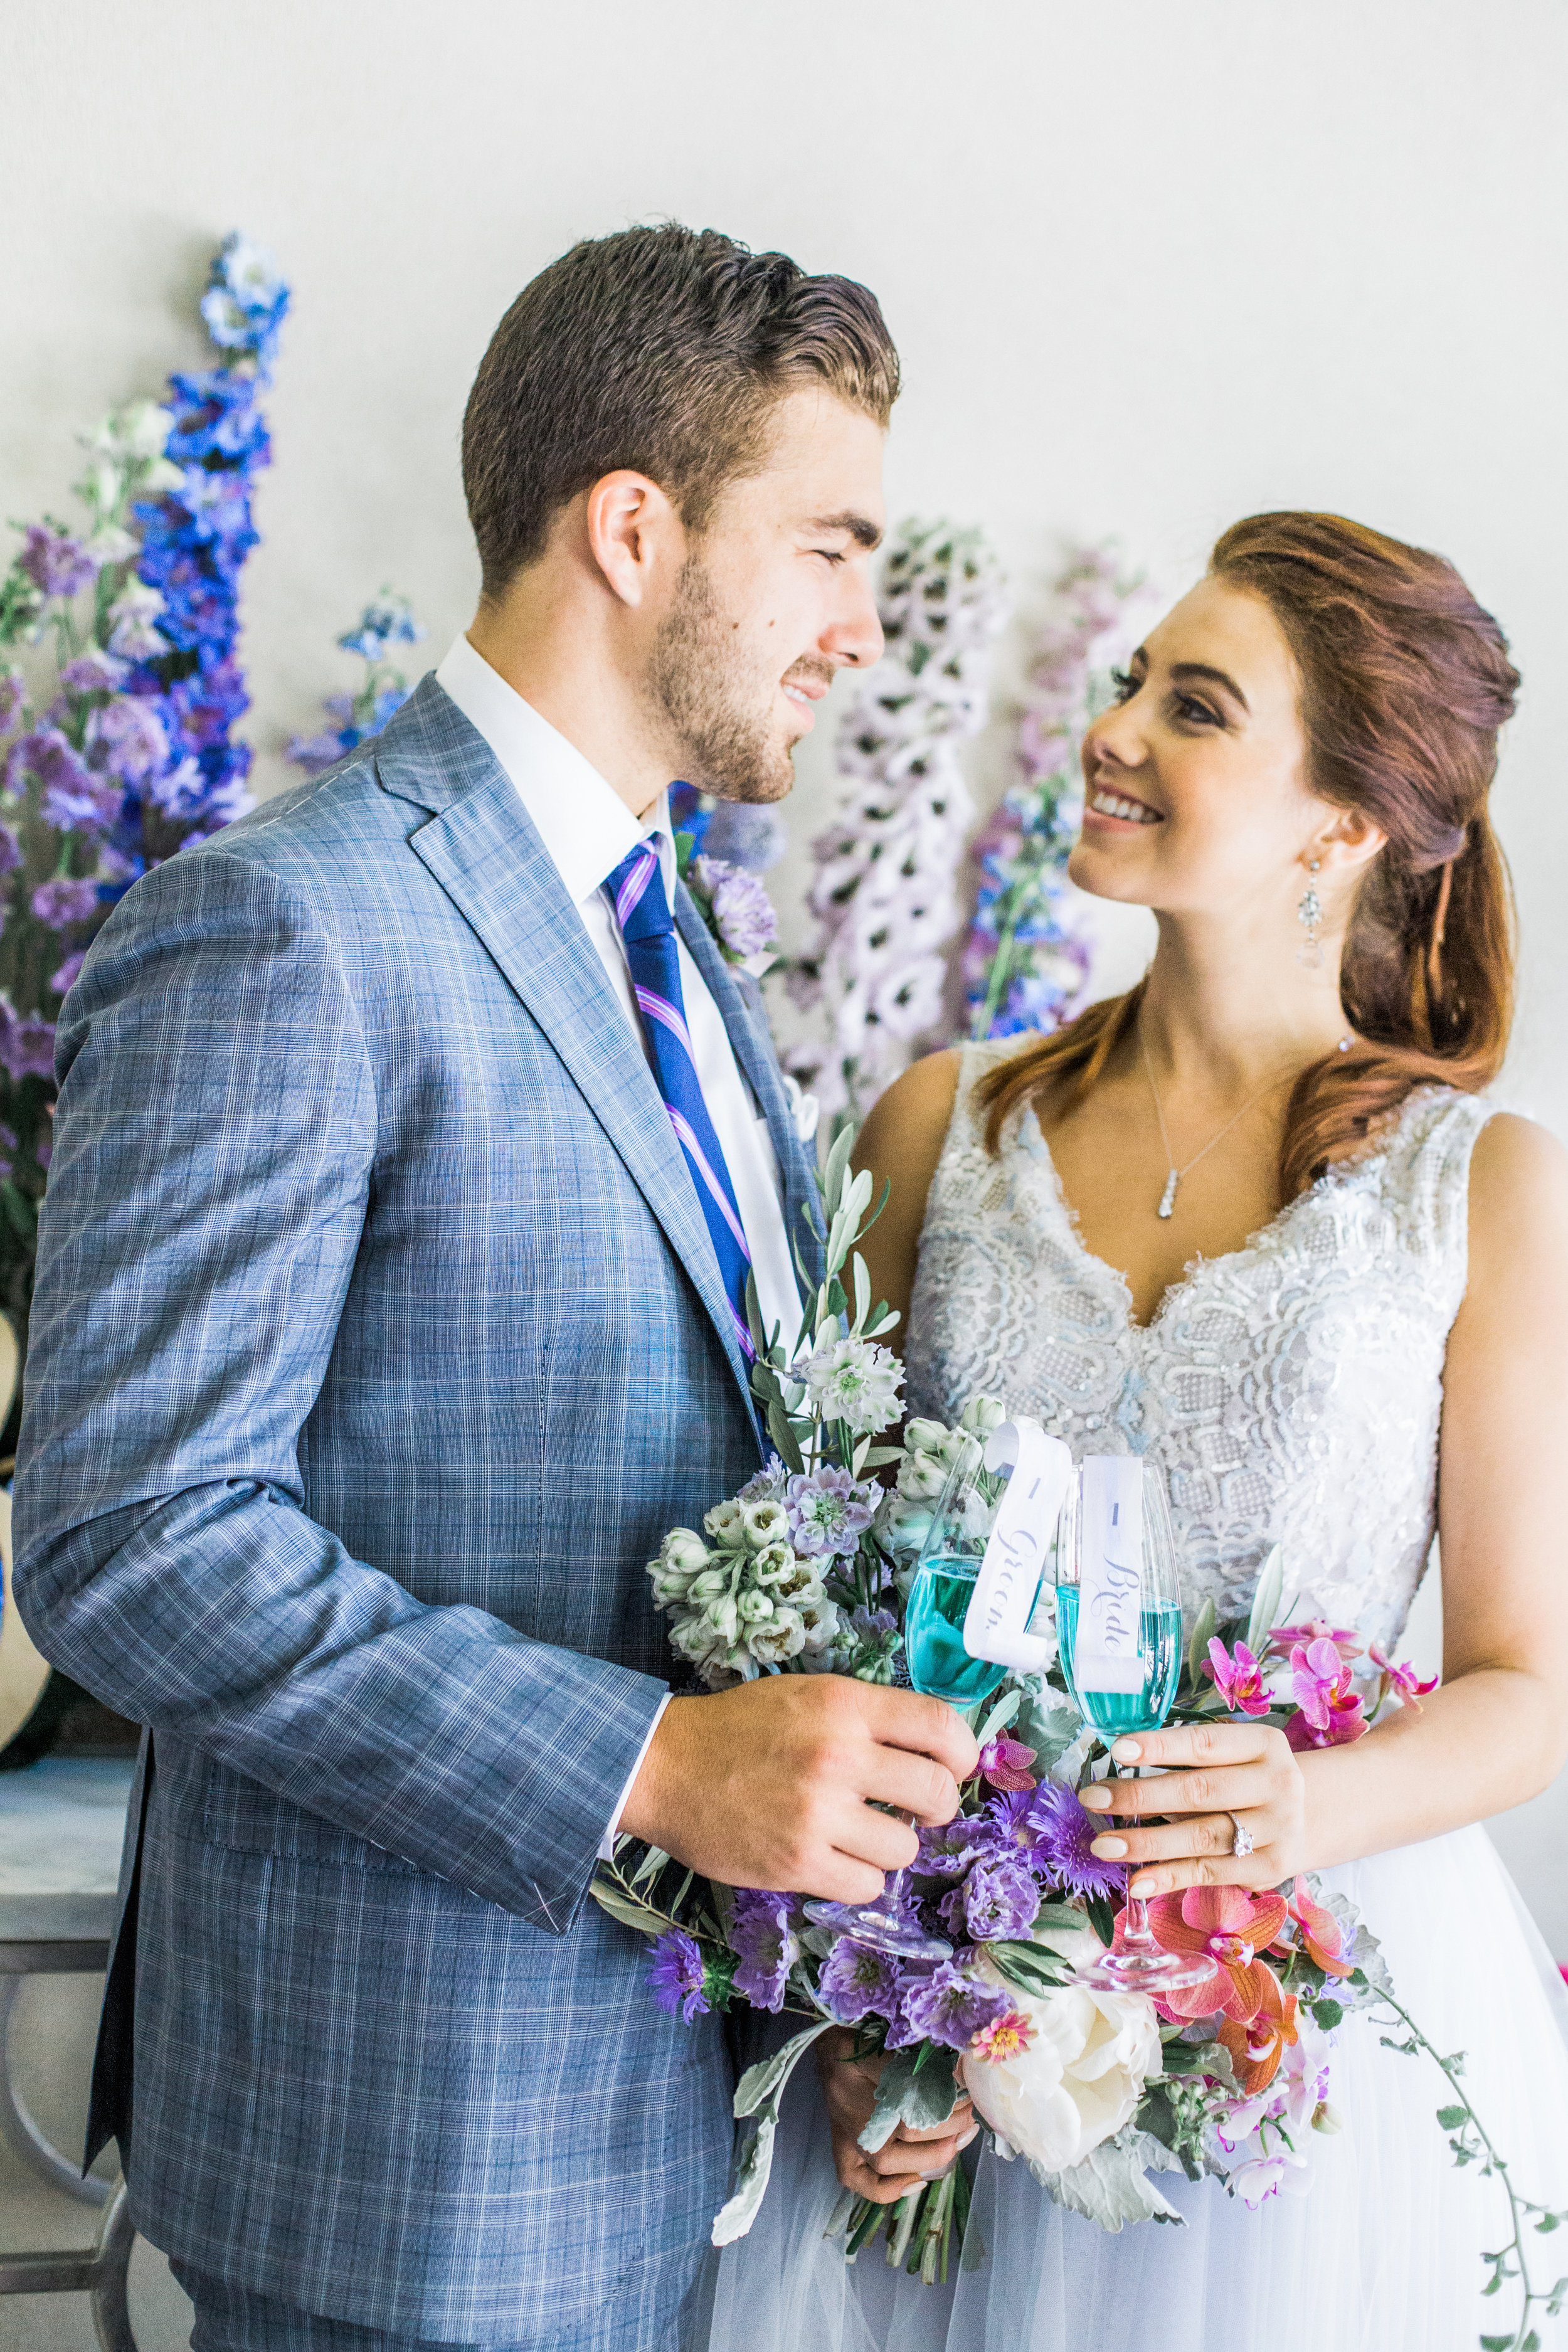 lilac, lavender _ periwinkle luxury wedding at cannon green charleston by scarlet plan _ design for revolution wedding tours (332).jpg